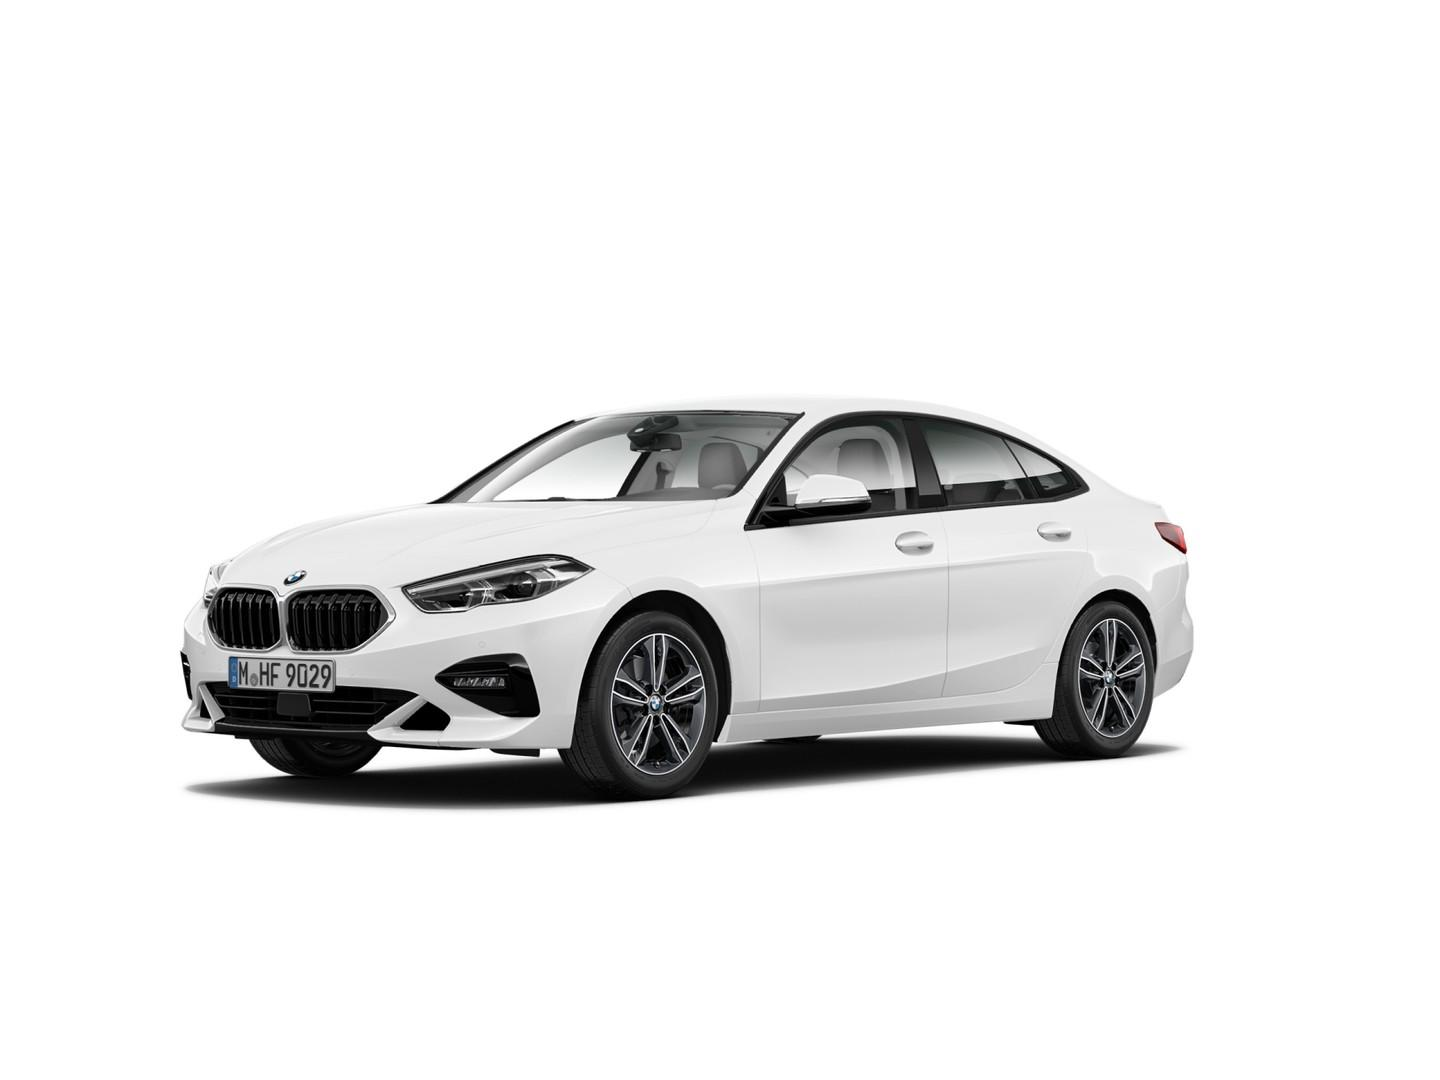 Bmw 2 serie Gran coupé 218ia executive edition sport line